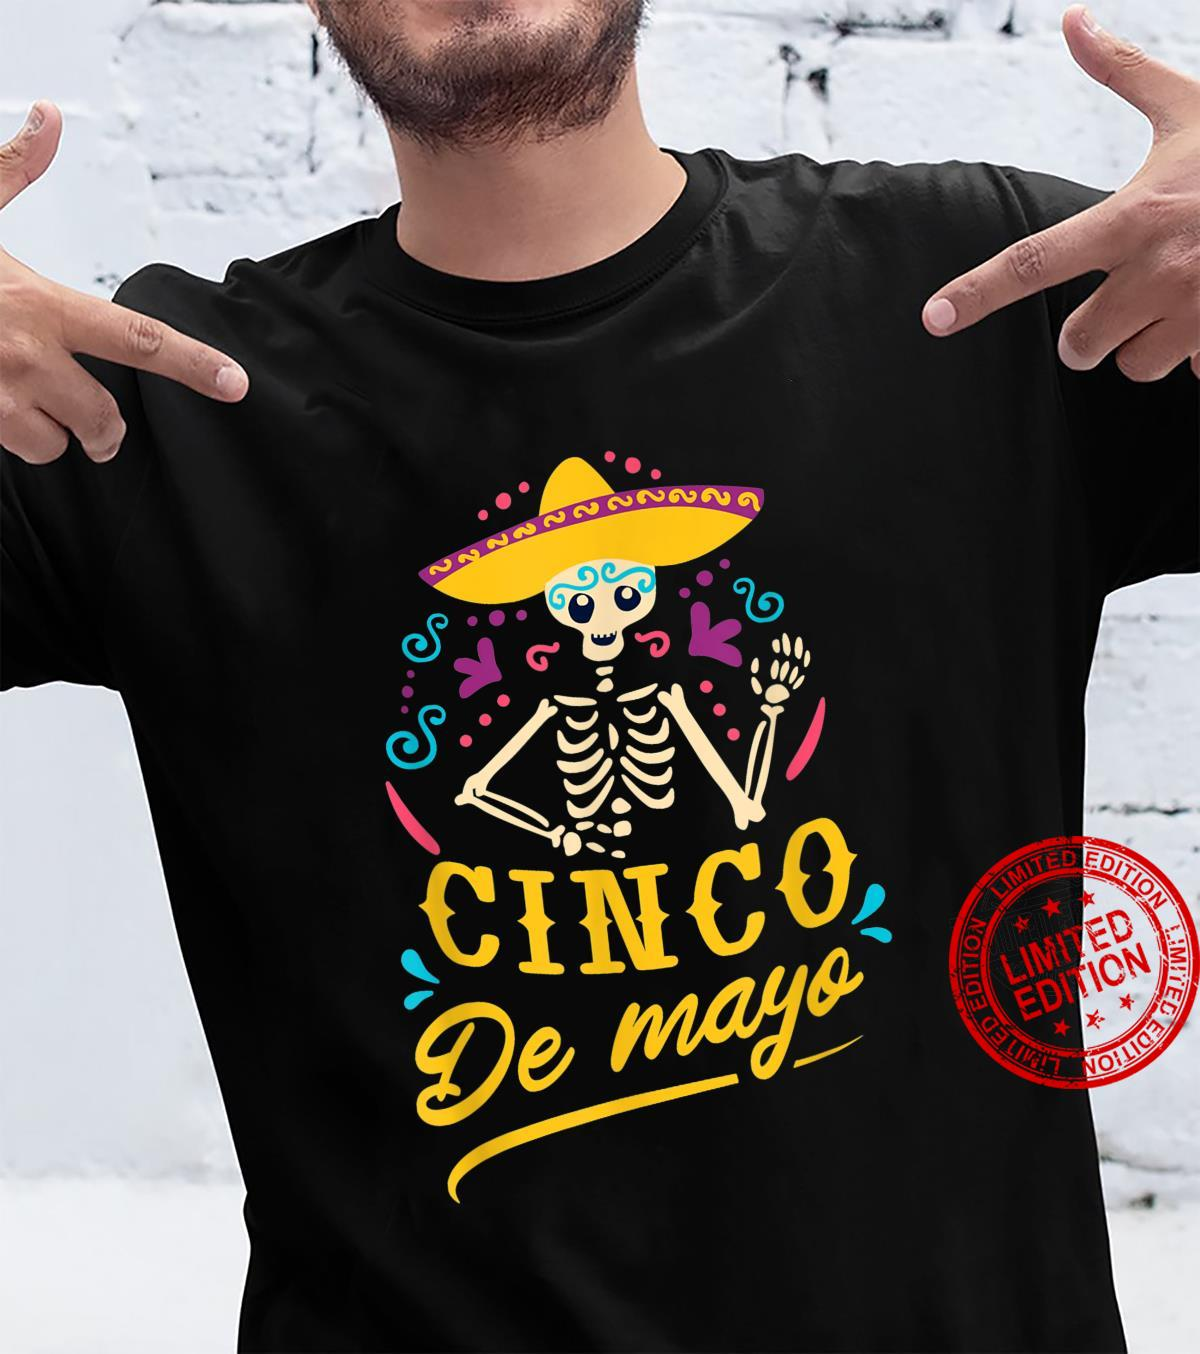 Happy Cinco de Mayo 5 de Mayo Shirt